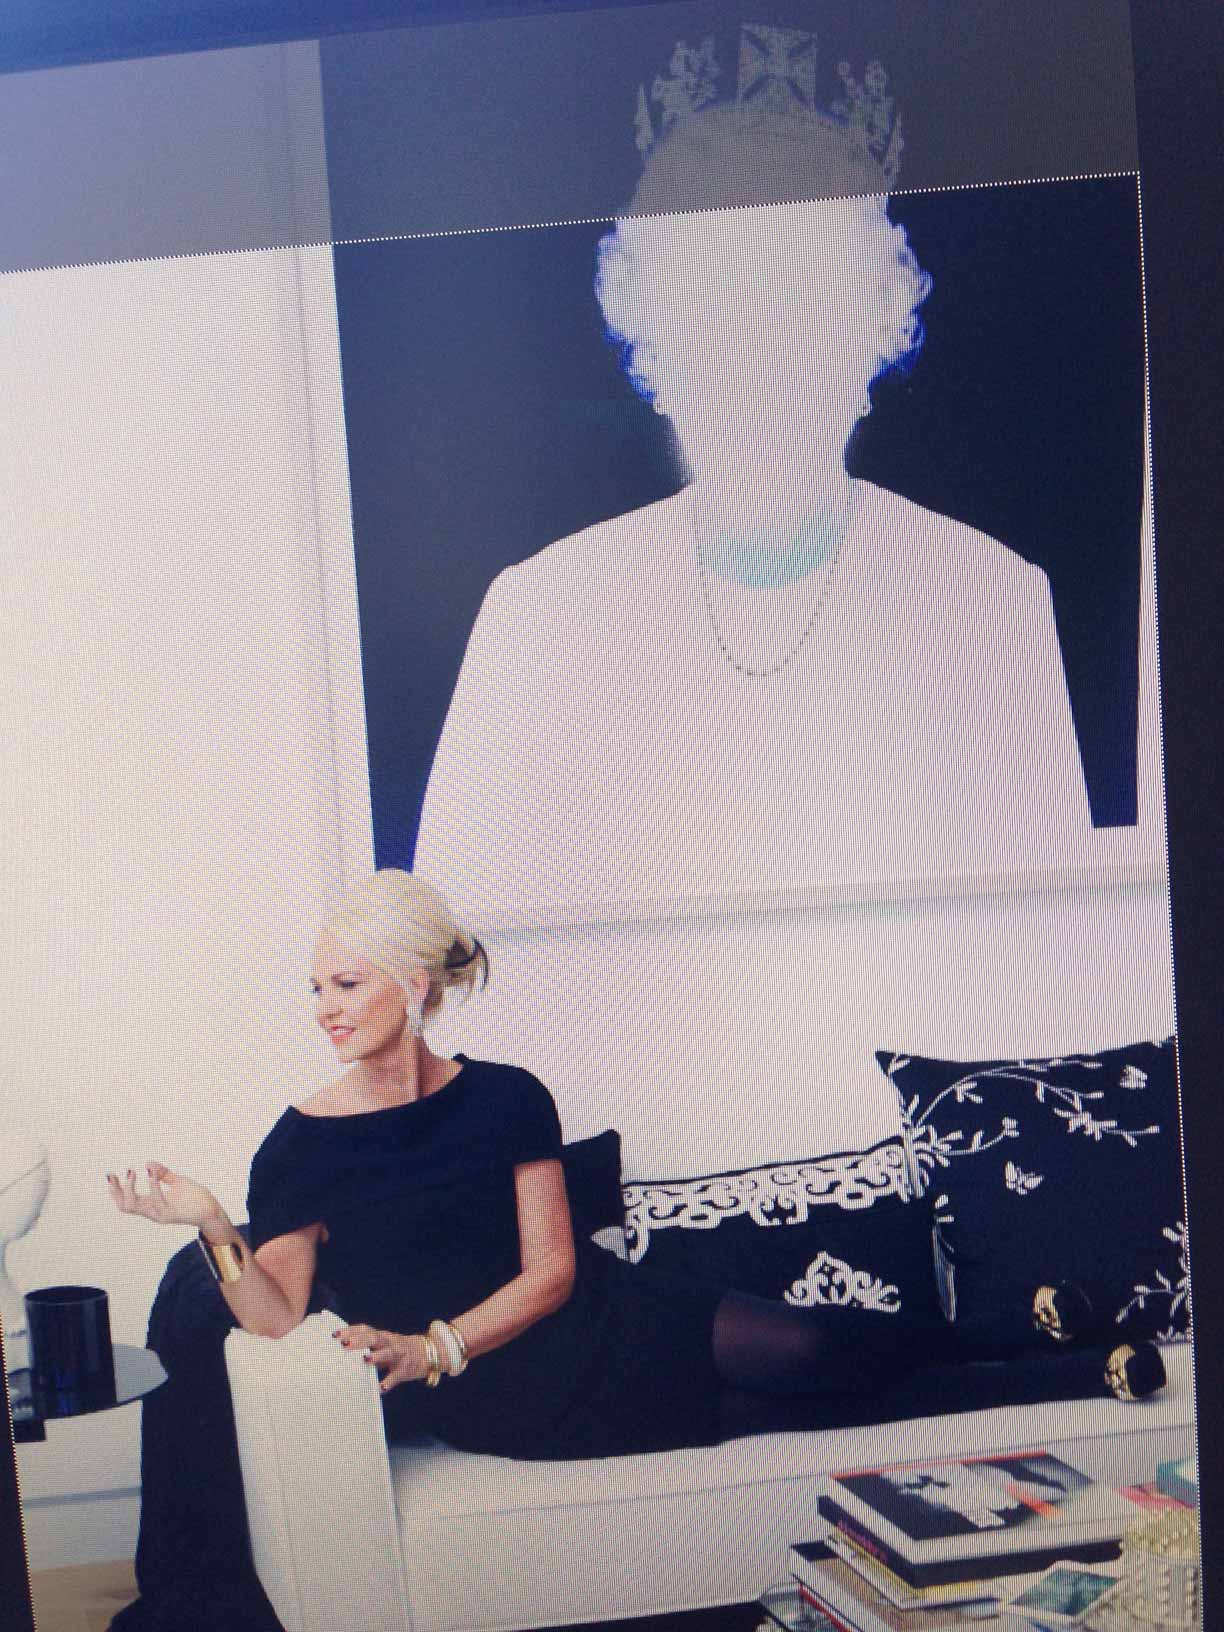 Amanda Eliasch, our elegant fashion editor, author, photographer, filmmaker, and diva, in her home.